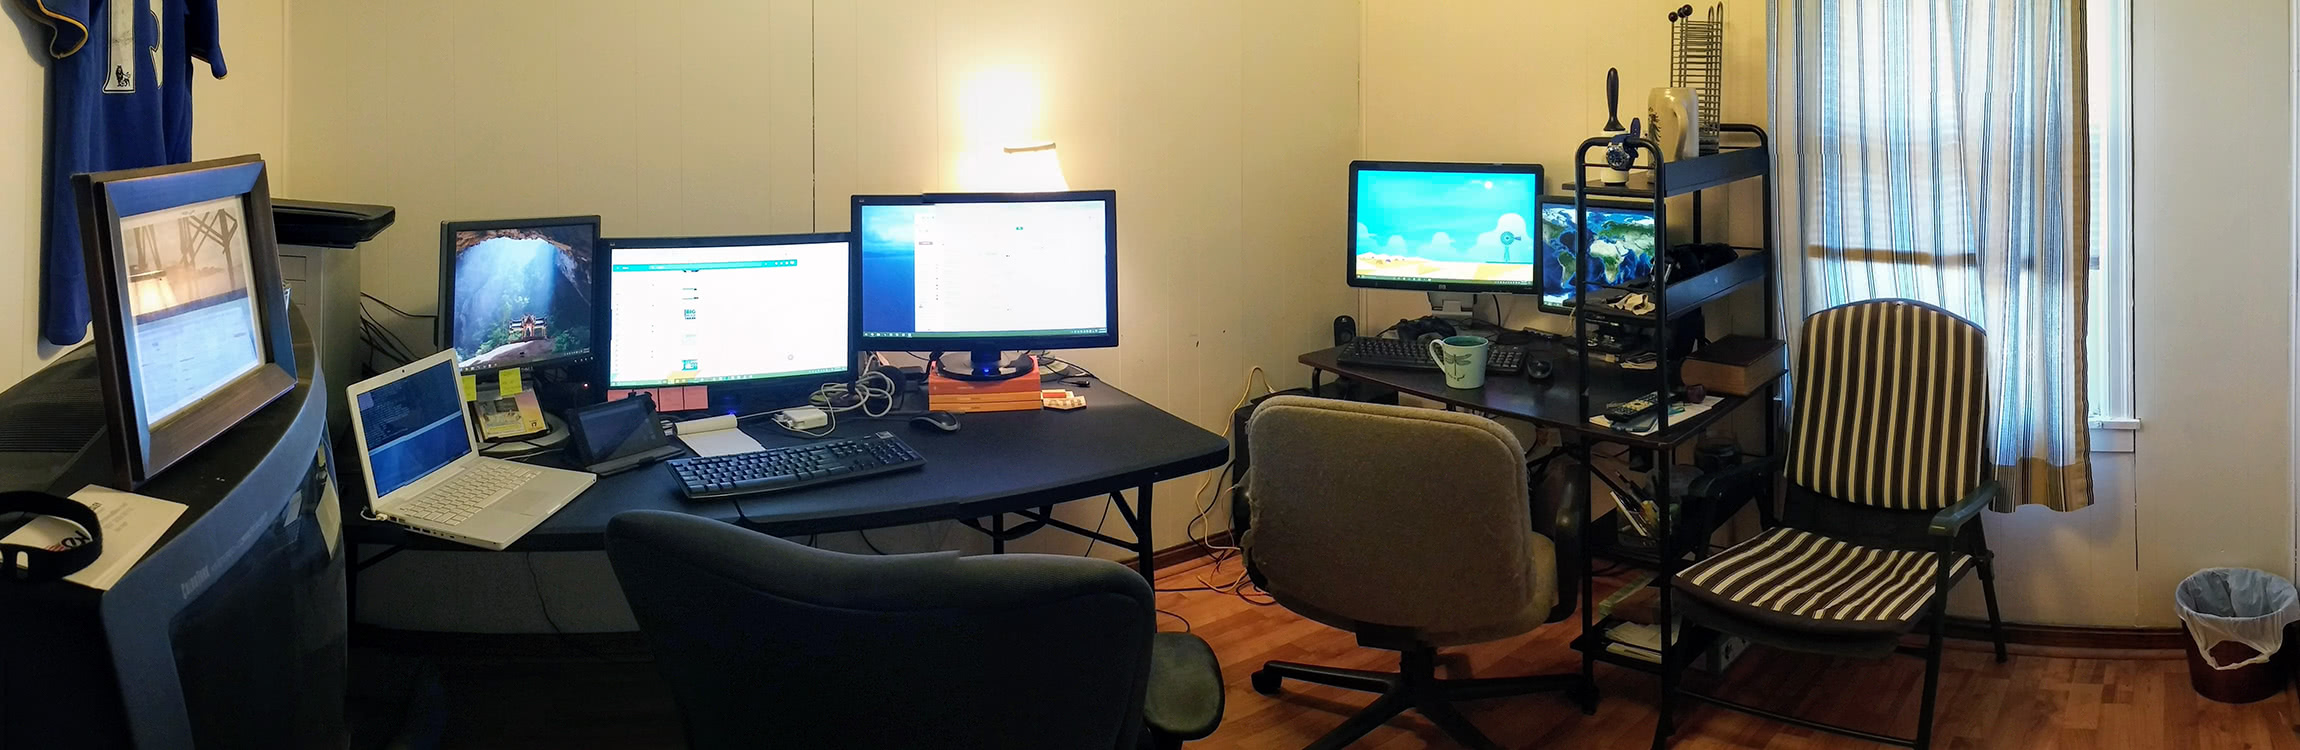 "Having a ""Double Office"" at Home"